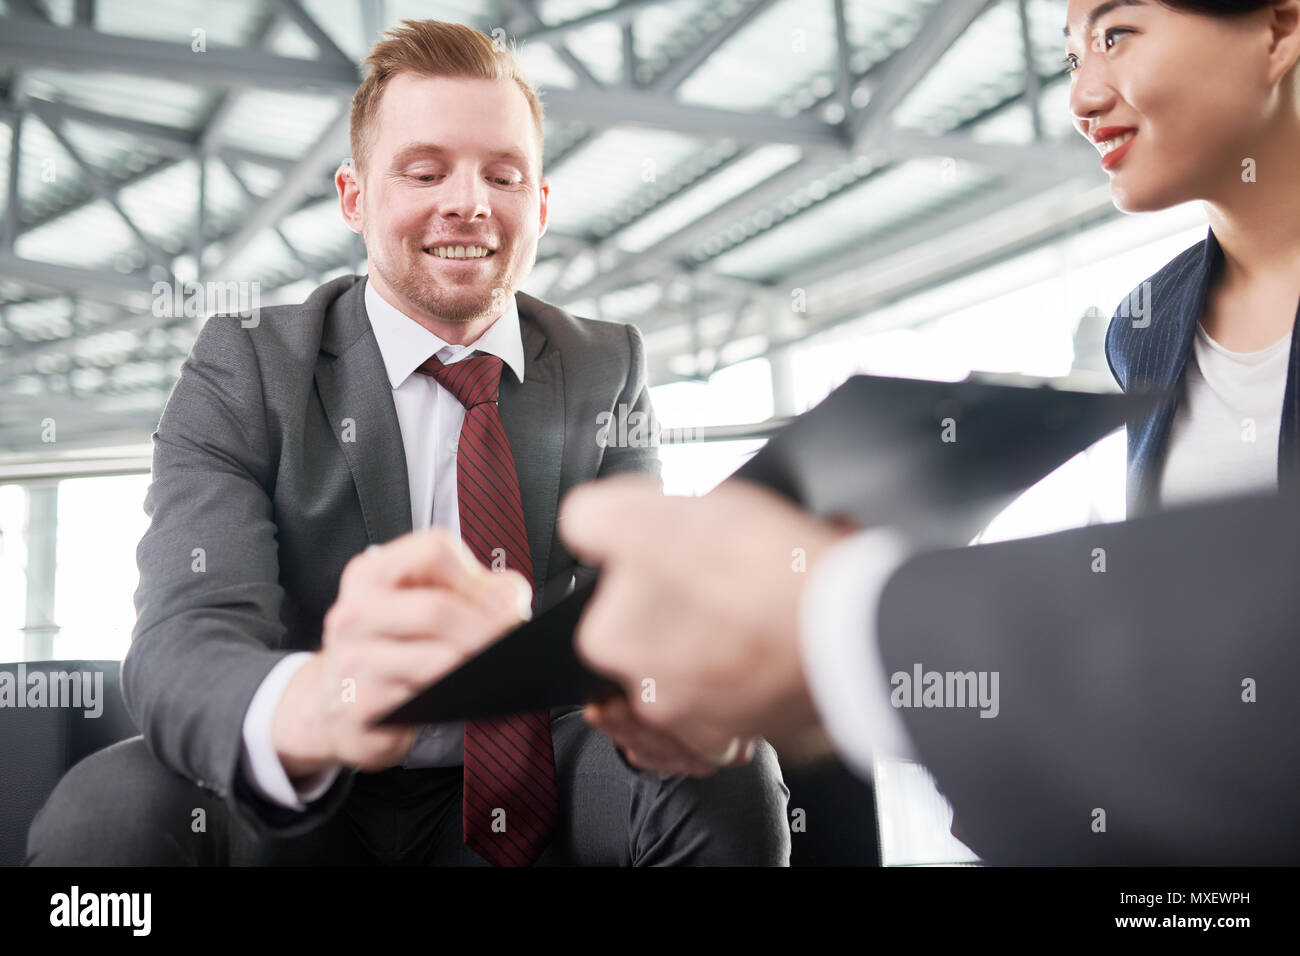 Handsome Entrepreneur Signing Contract - Stock Image